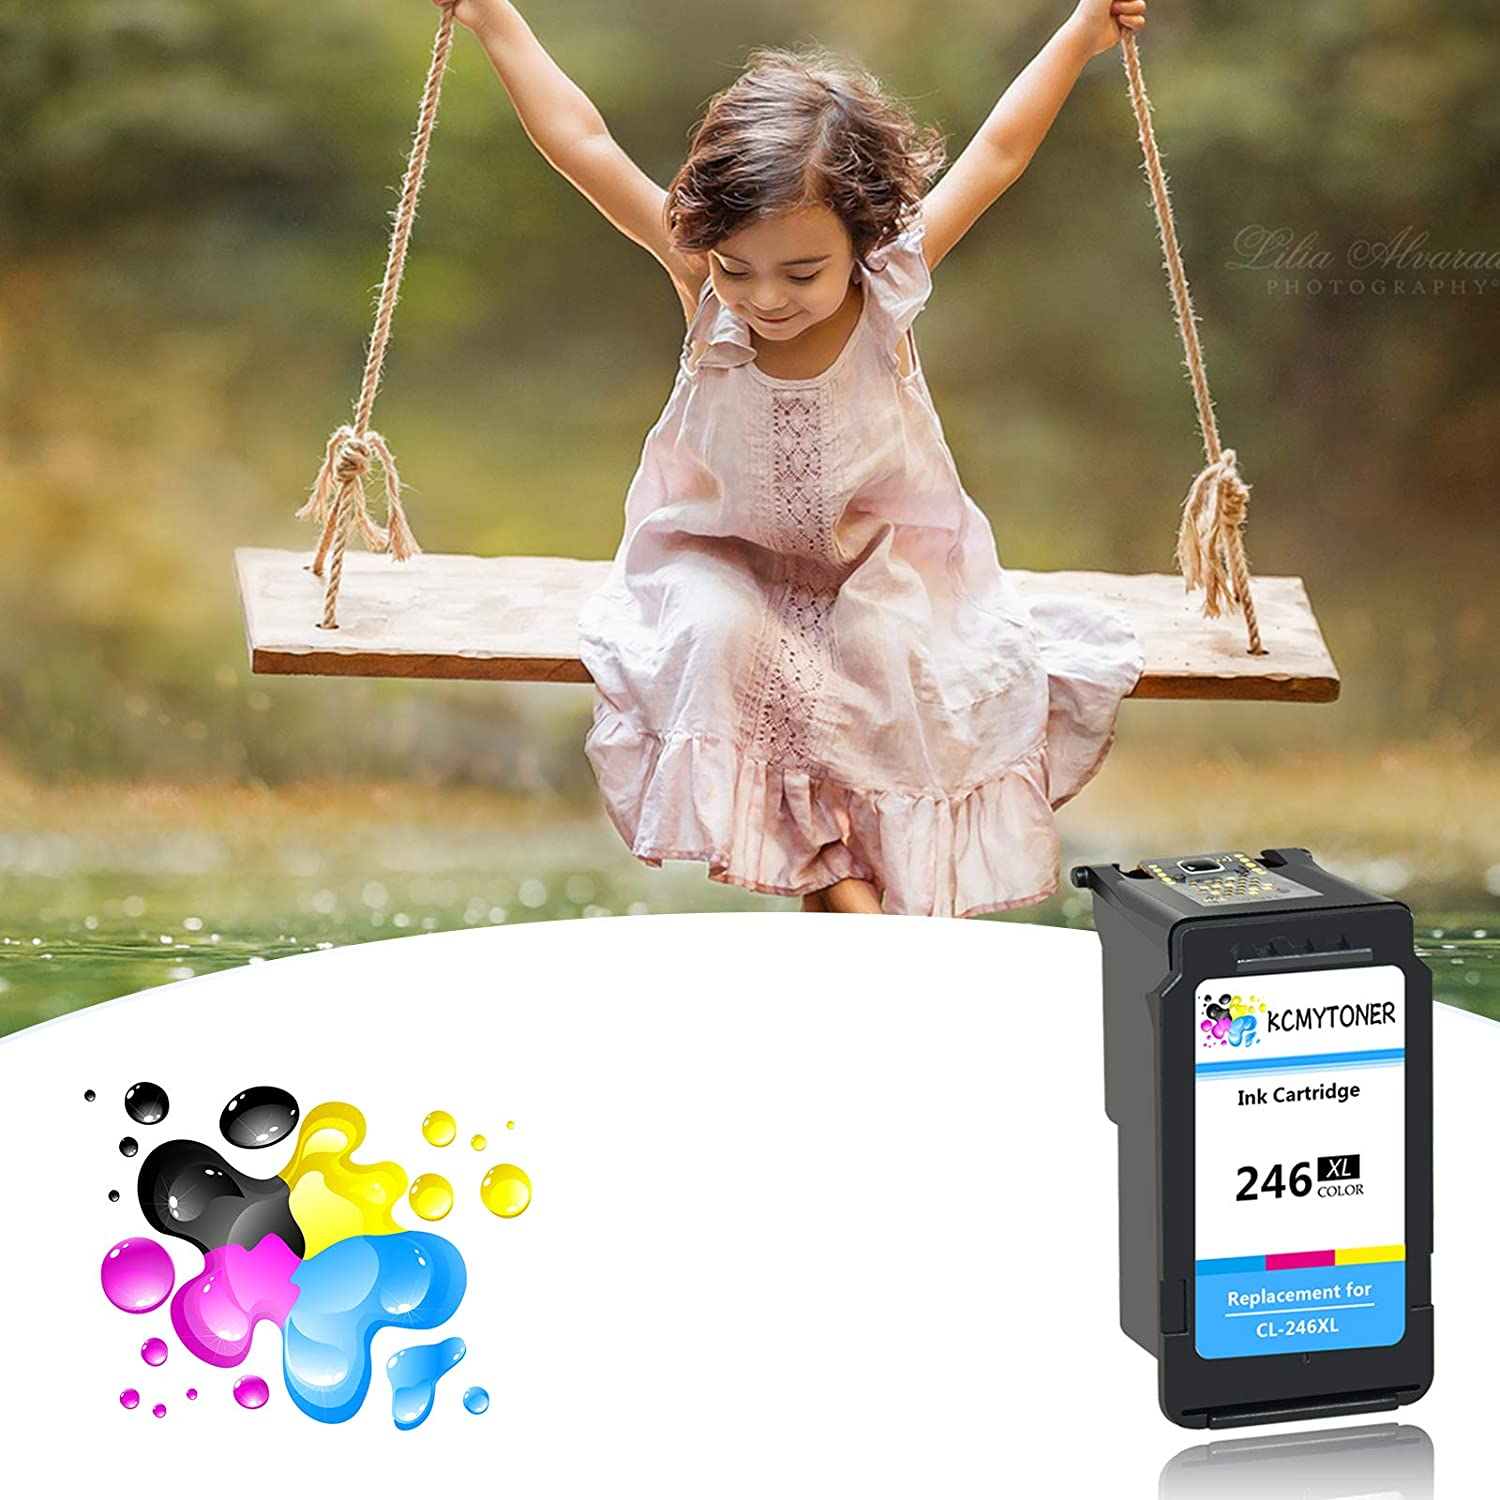 KCYMTONER Remanufactured Ink Cartridge High Yield Compatible for Canon CL-246XL CL 246 246XL 246 XL PIXMA MG2520 MG2920 MG2922 MG2420 MG2522 MG3022 MG2555 IP2820 TS302 TR4520 Tri-Color, 5 Pack